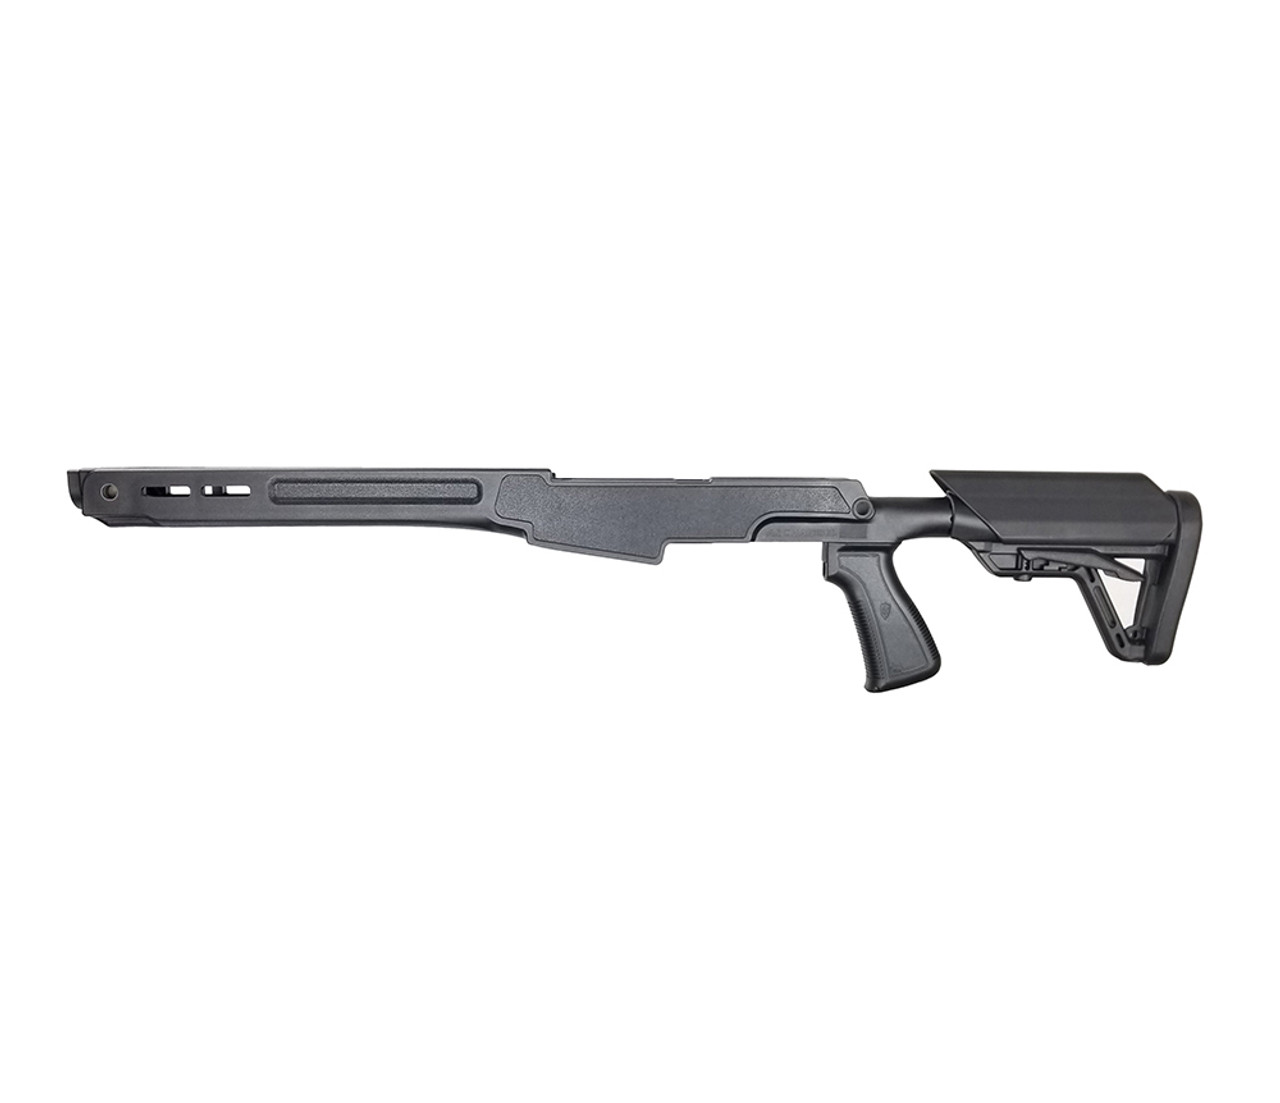 Archangel® Springfield Armory® M1A™ Close Quarters Stock - Black Polymer